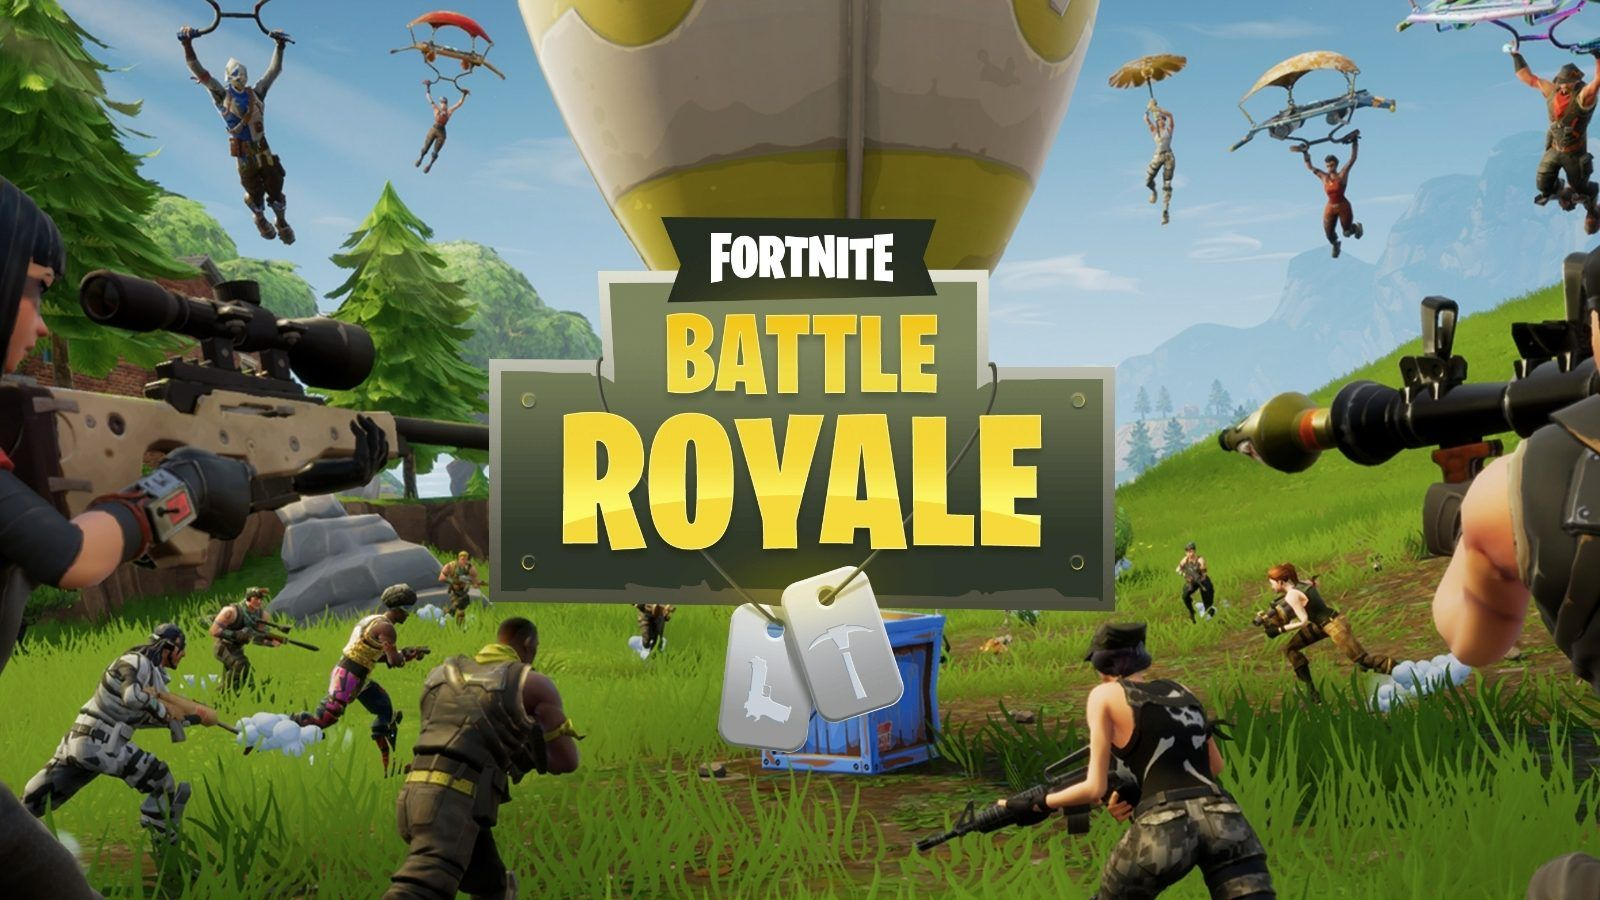 no root fortnite battle royale hack get unlimited v bucks android ios hack fortnite battle royale apk get unlimited v bucks no survey apk download - fortnite android root